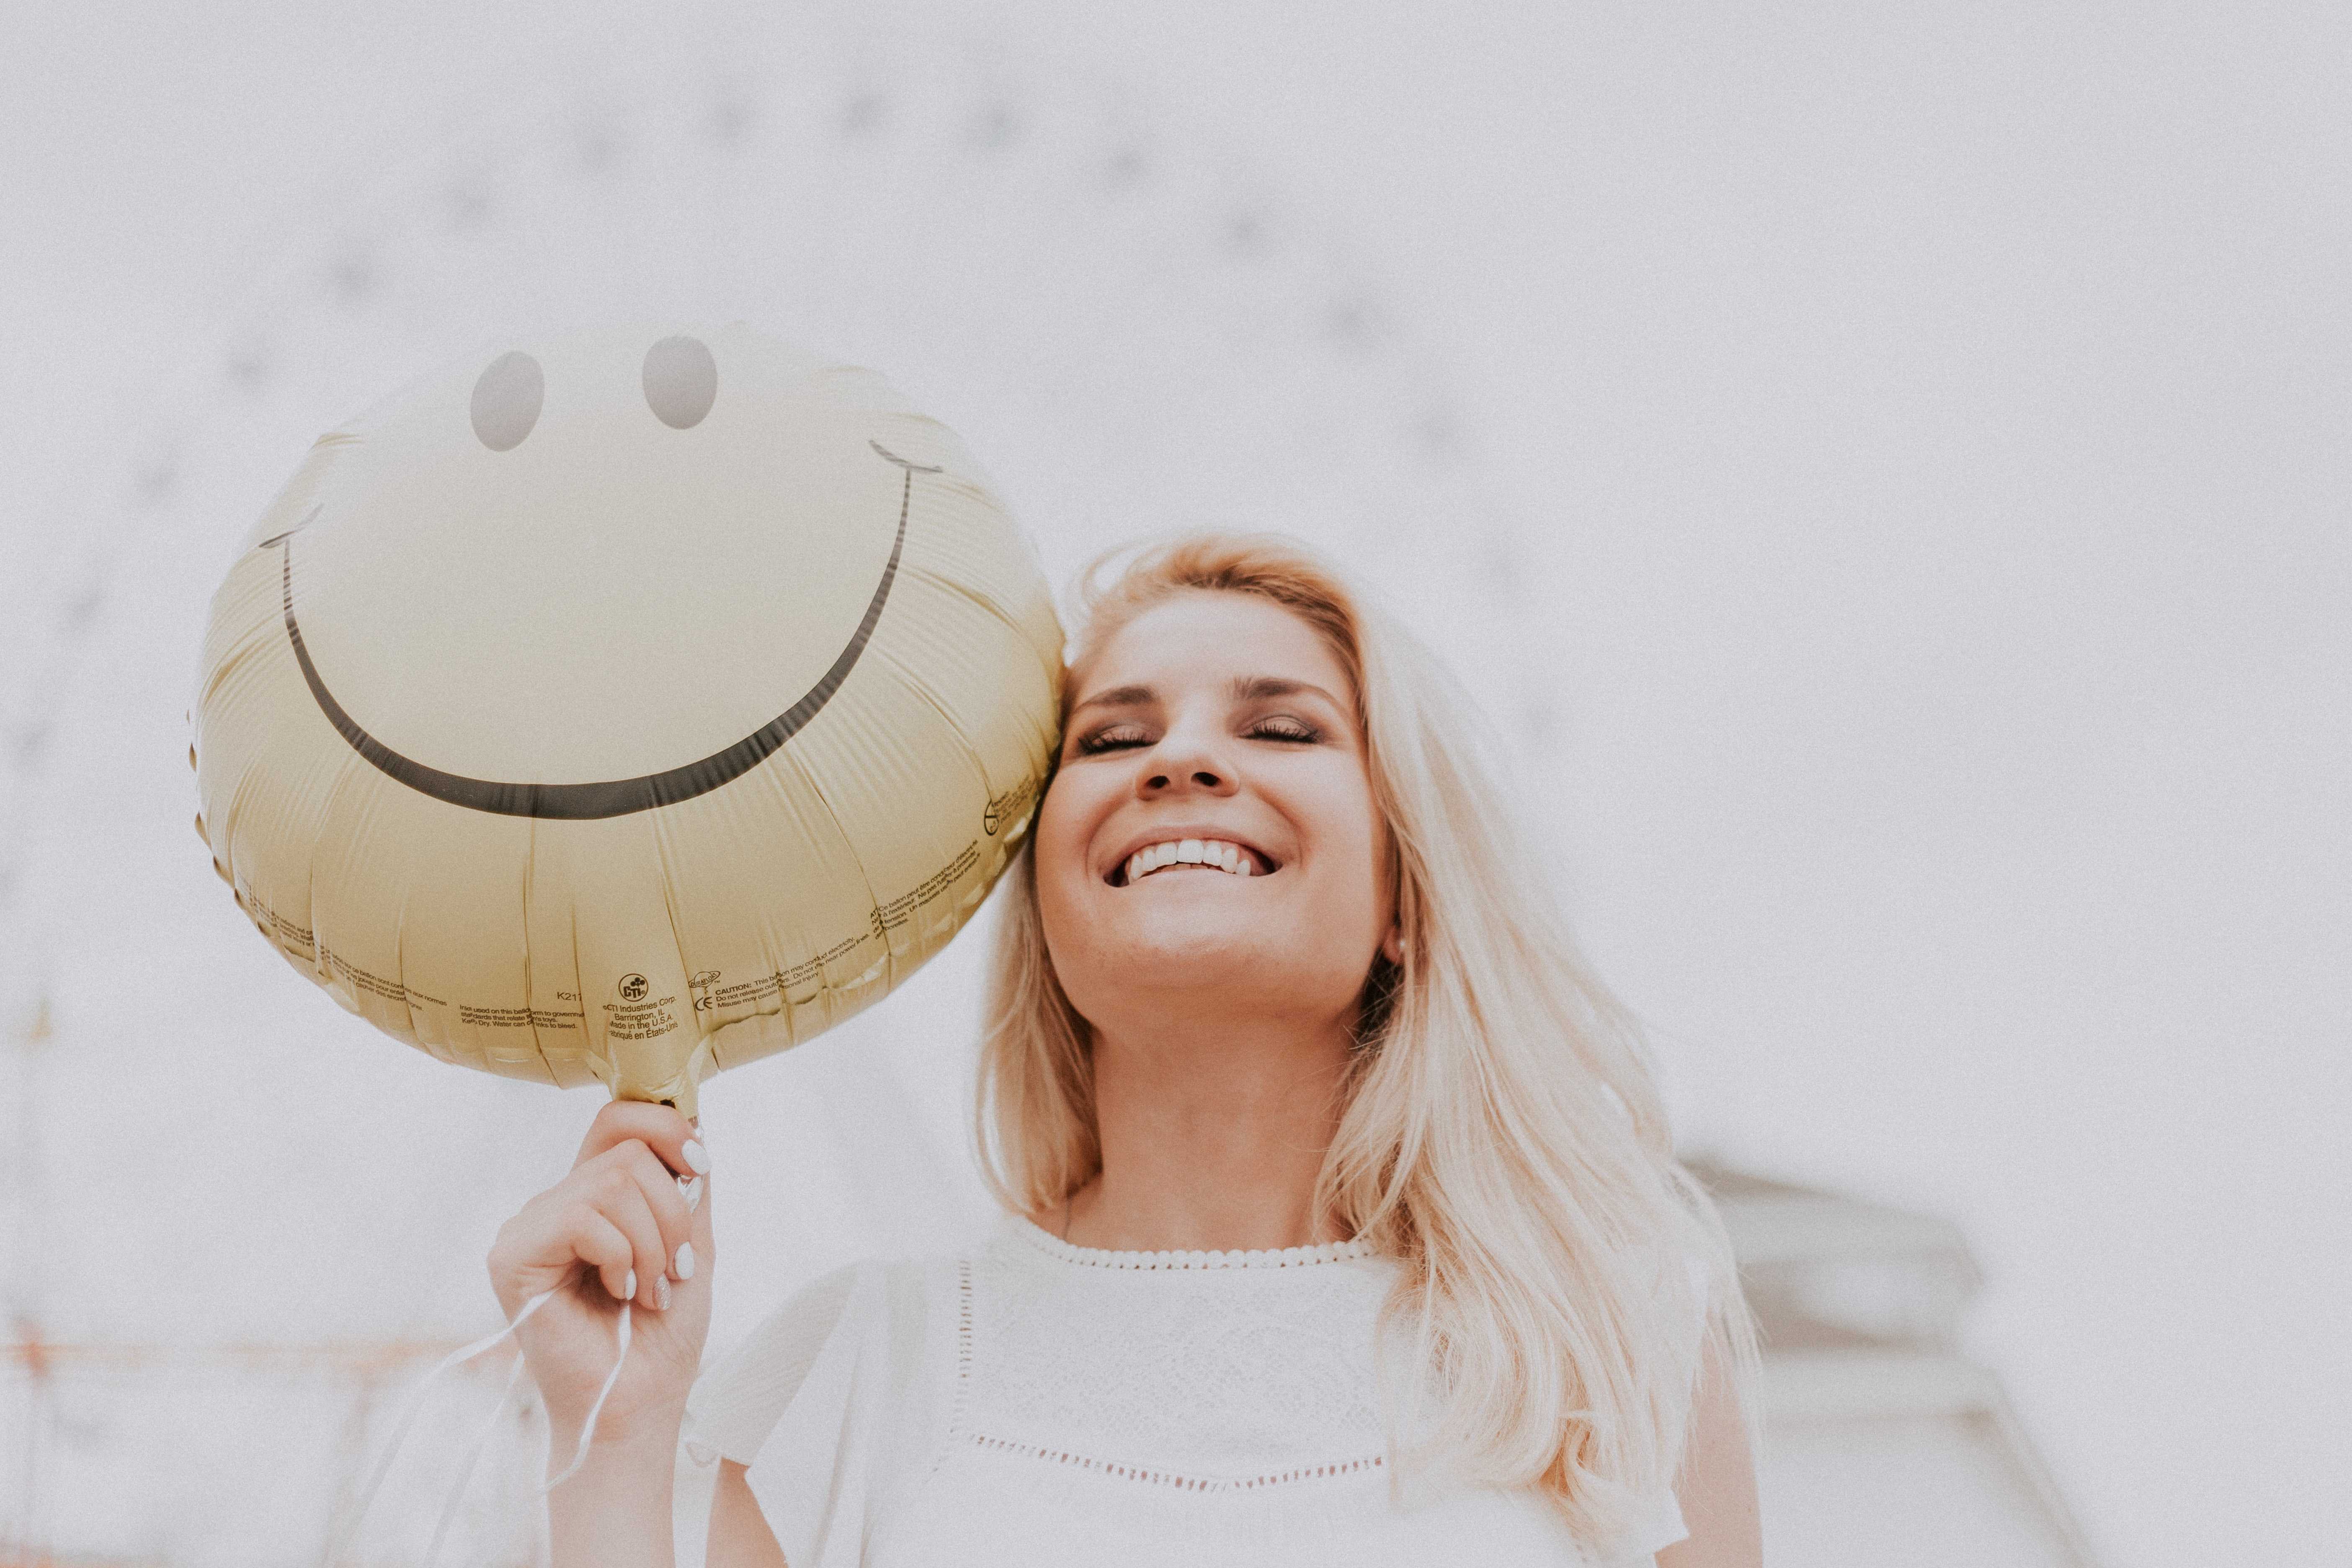 Girl with blonde hair smiling and holding a smiley face balloon